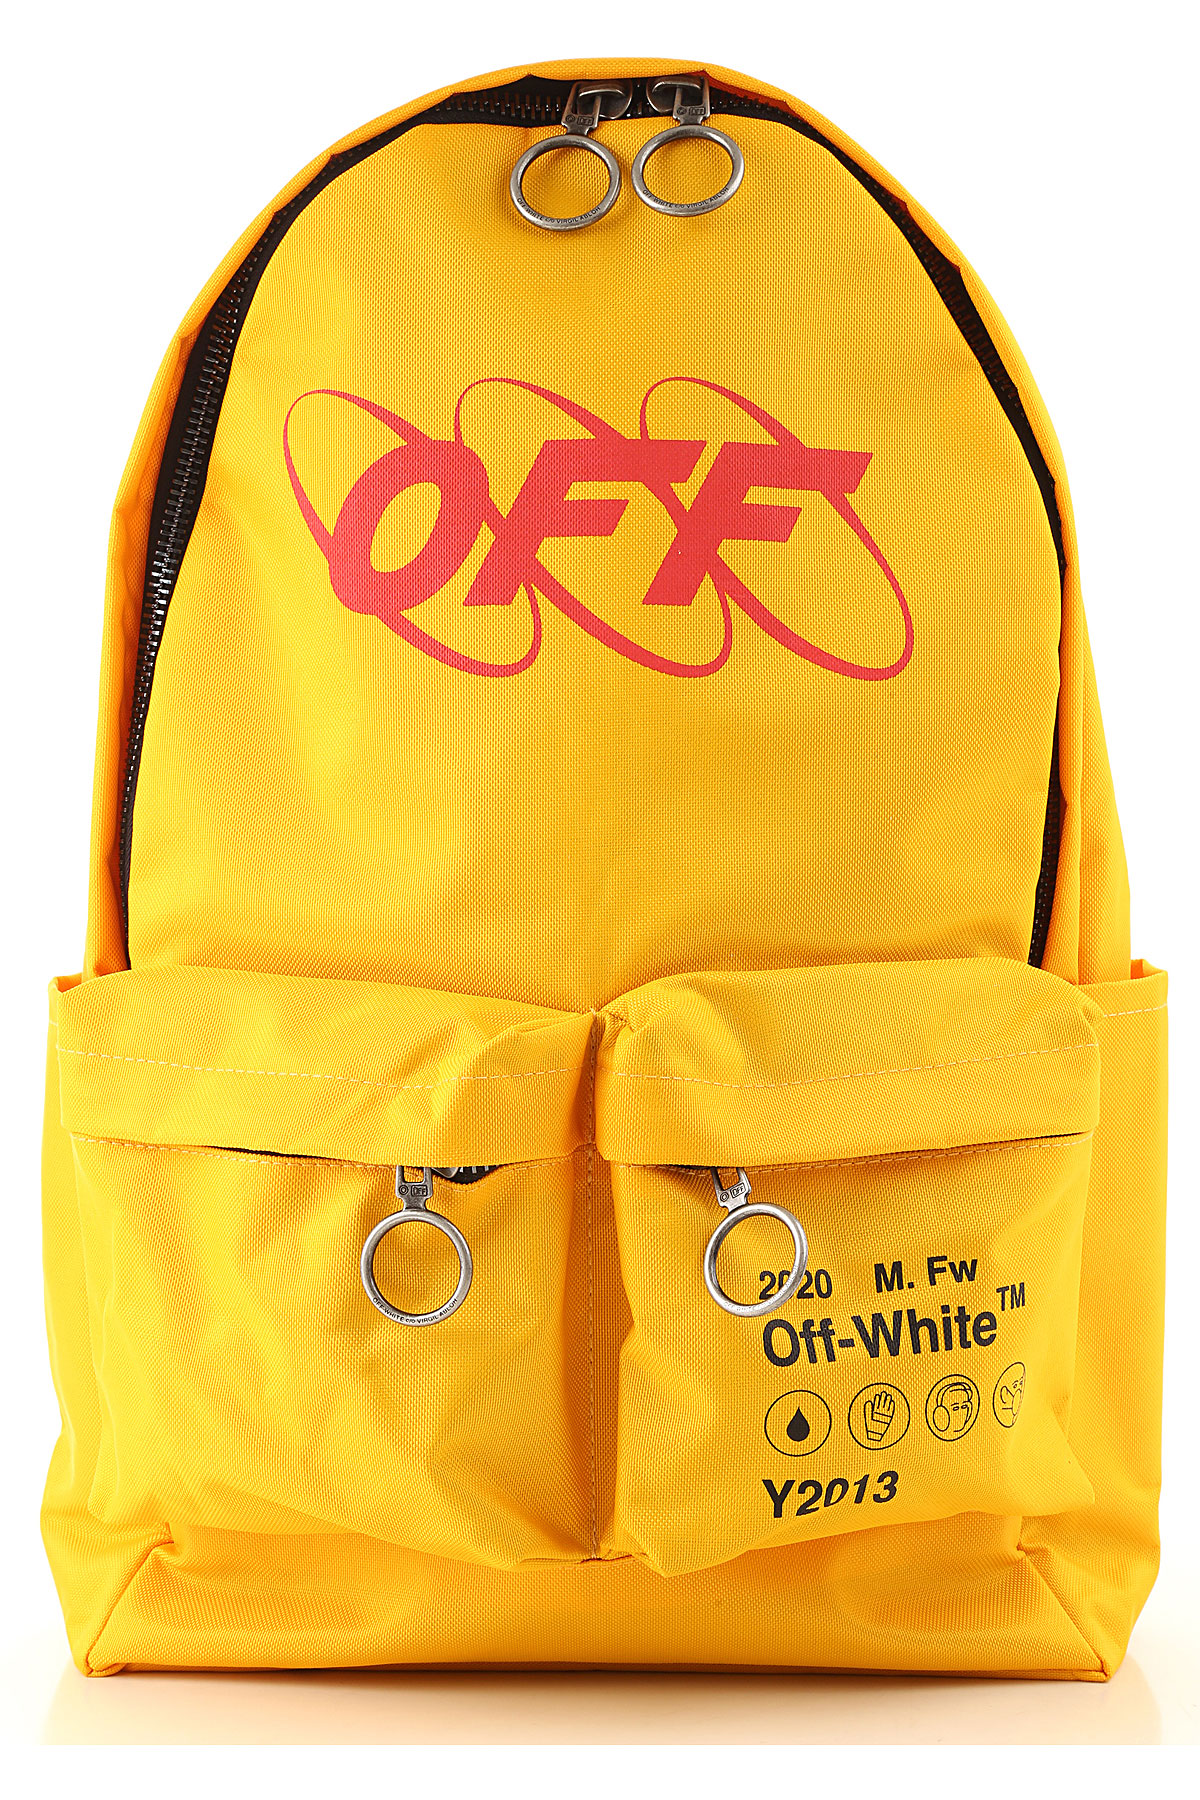 Off-White Virgil Abloh Backpack for Women On Sale, Canary Yellow, Polyvinyl Chloride, 2019